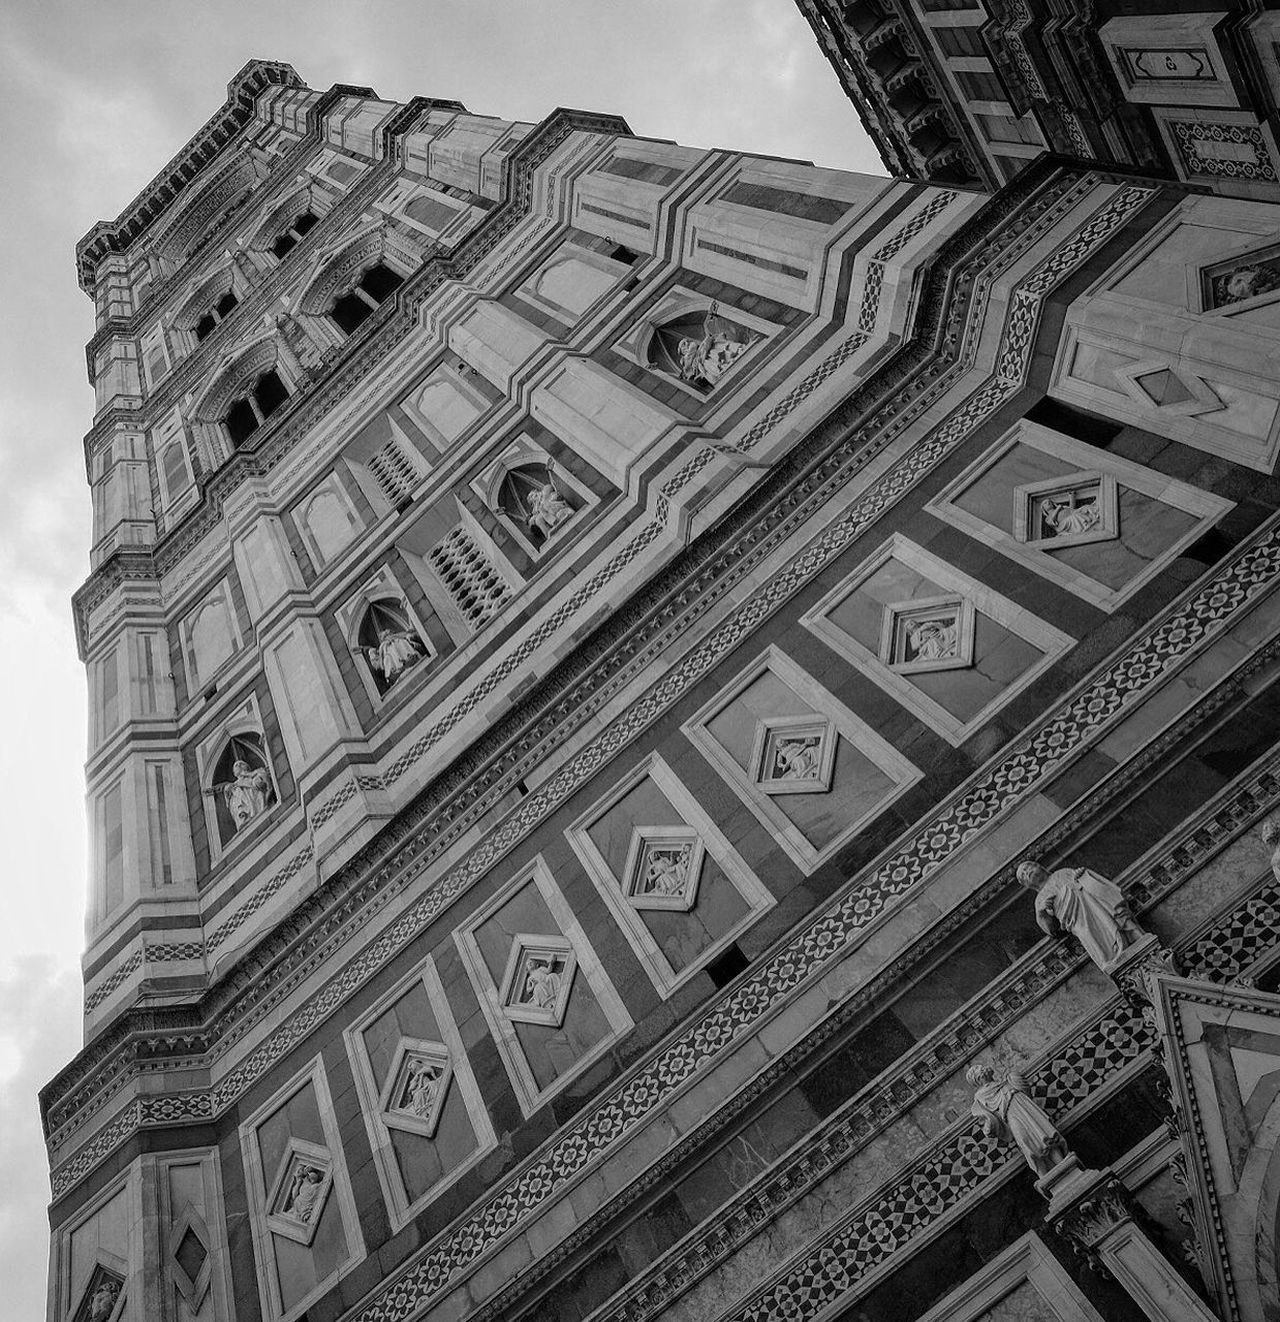 Architecture Low Angle View Built Structure Building Exterior No People Day Outdoors Sky Florence Cityscape Florence Cathedral Bell Tower Cathedral Florence Italy Blackandwhite Photography Blackandwhite Religion Travel Destinations Architecture FUJIFILM X-T1 Fujifilm_xseries Italy Low Angle View Fuji X-T1 City